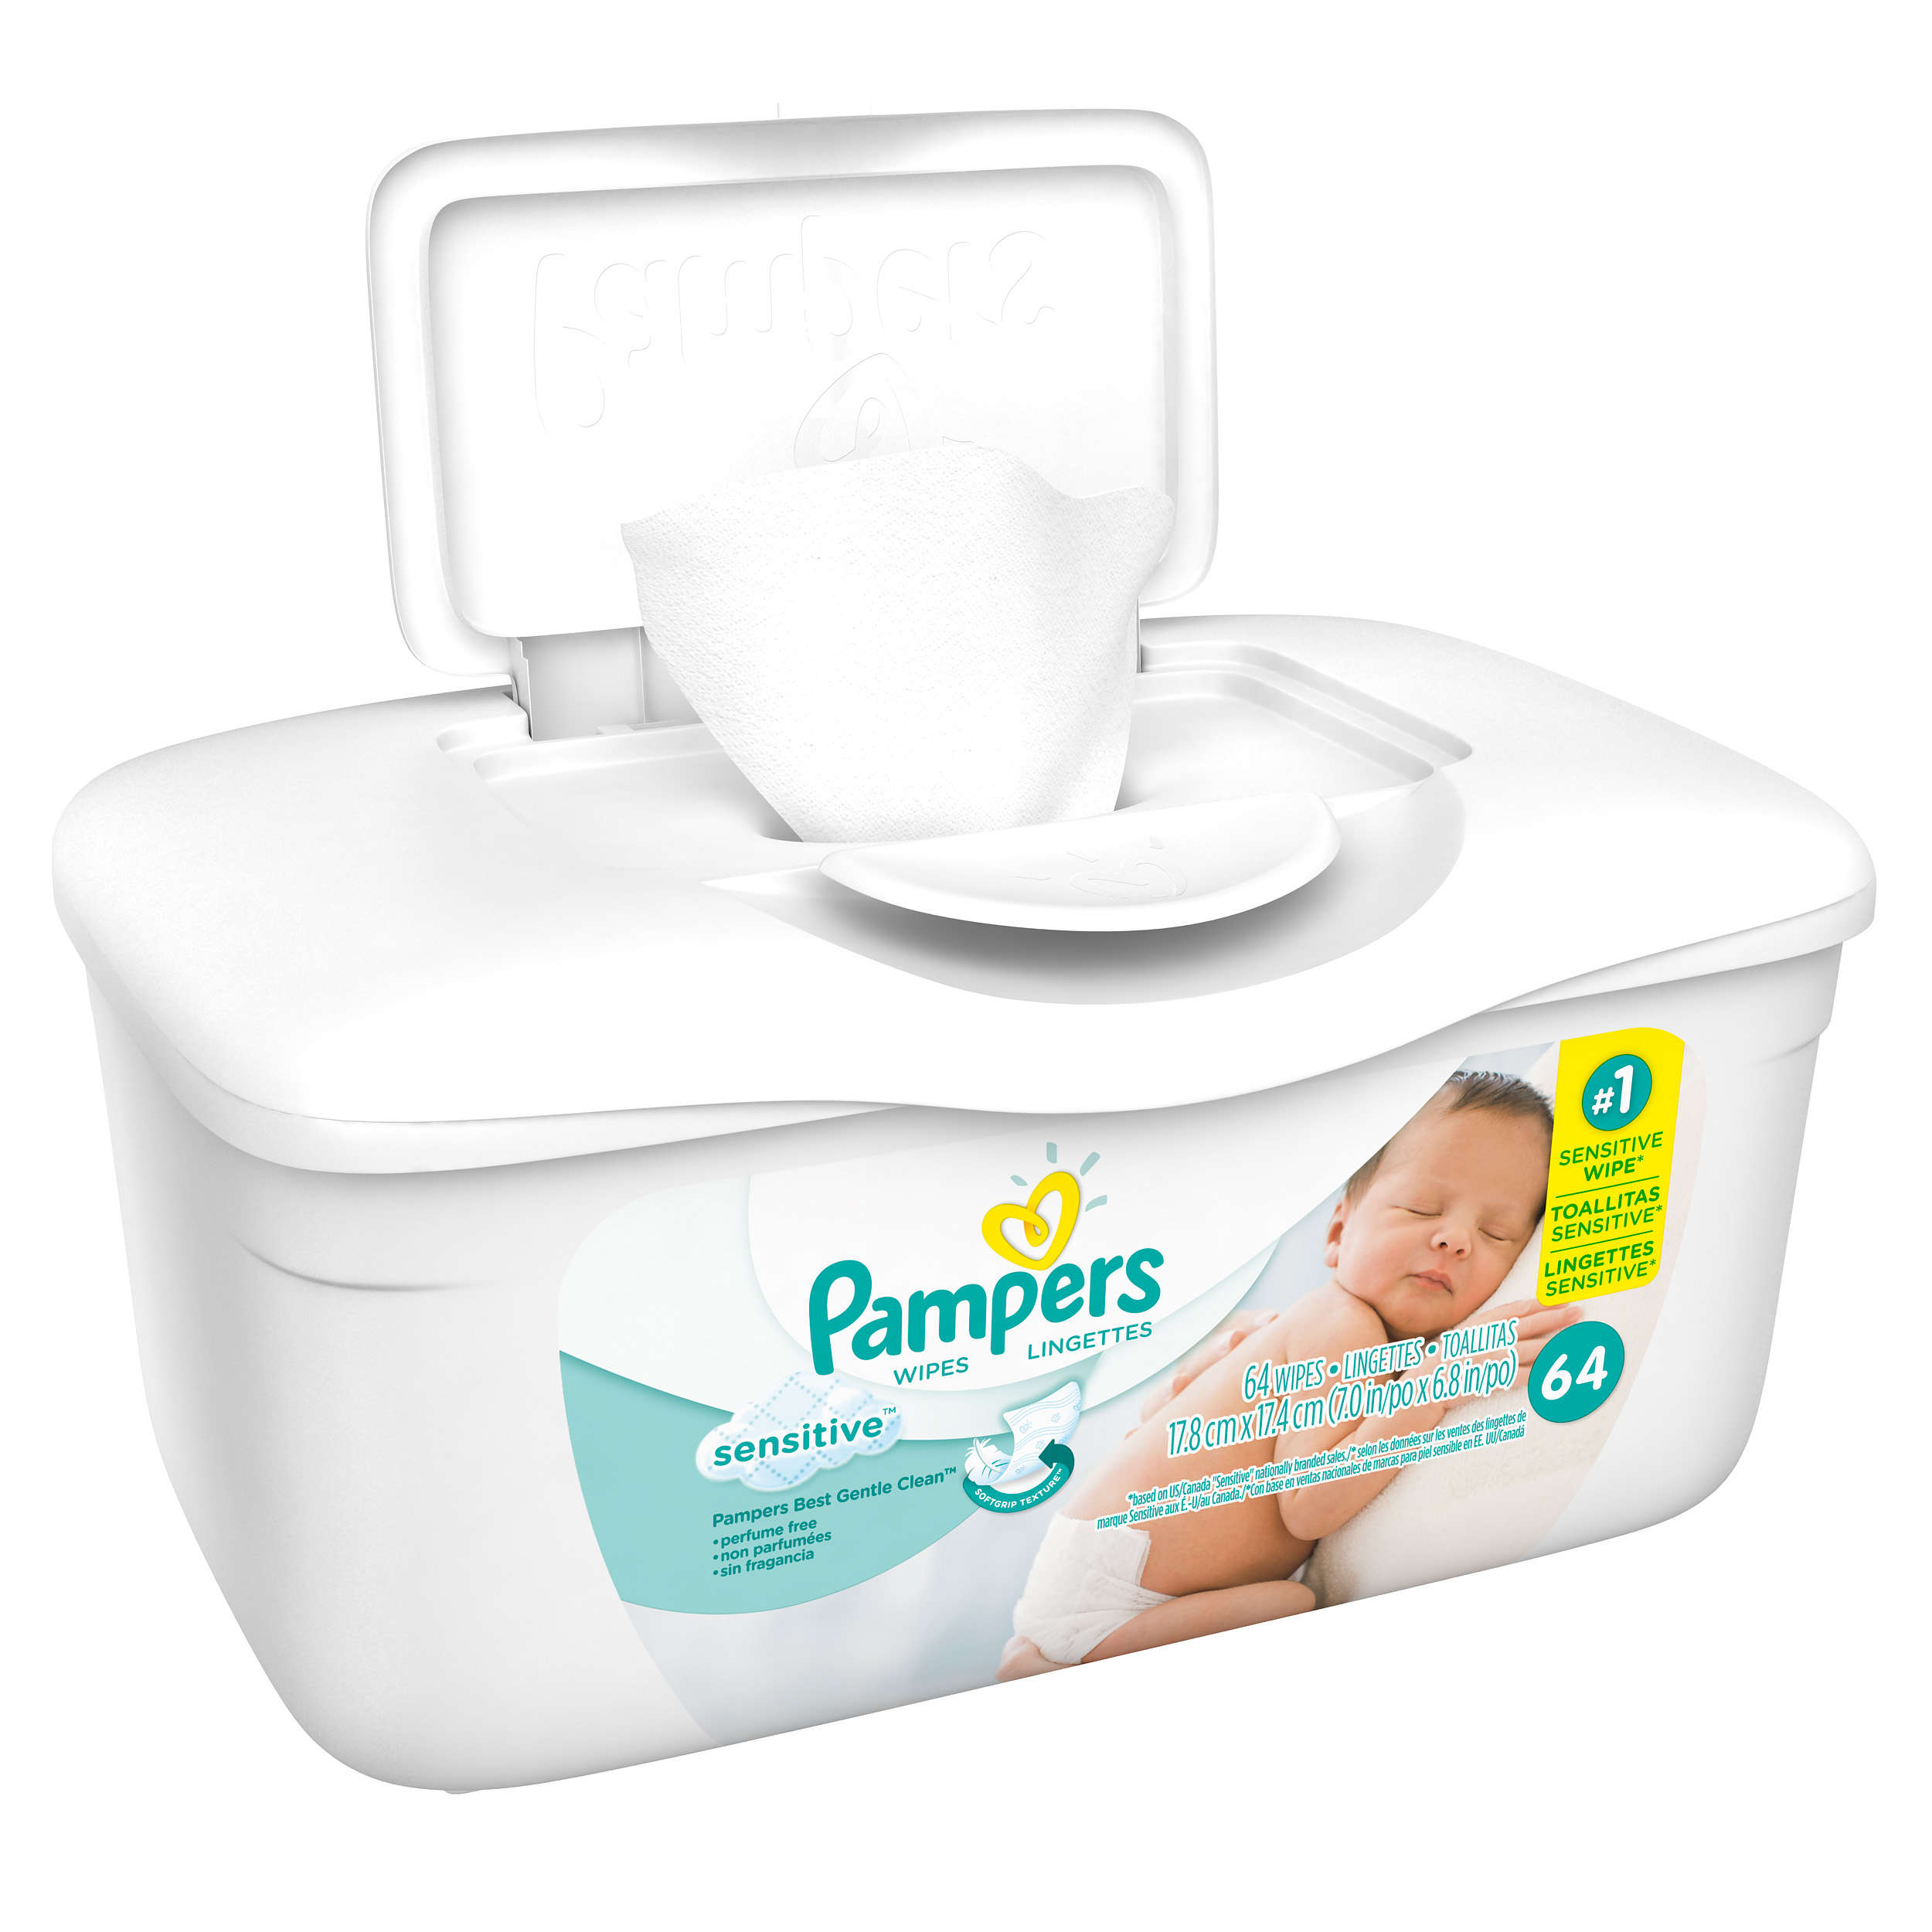 Pampers Sensitive Baby Wipes, Unscented, 1 Pop-Top Tub (64 count)